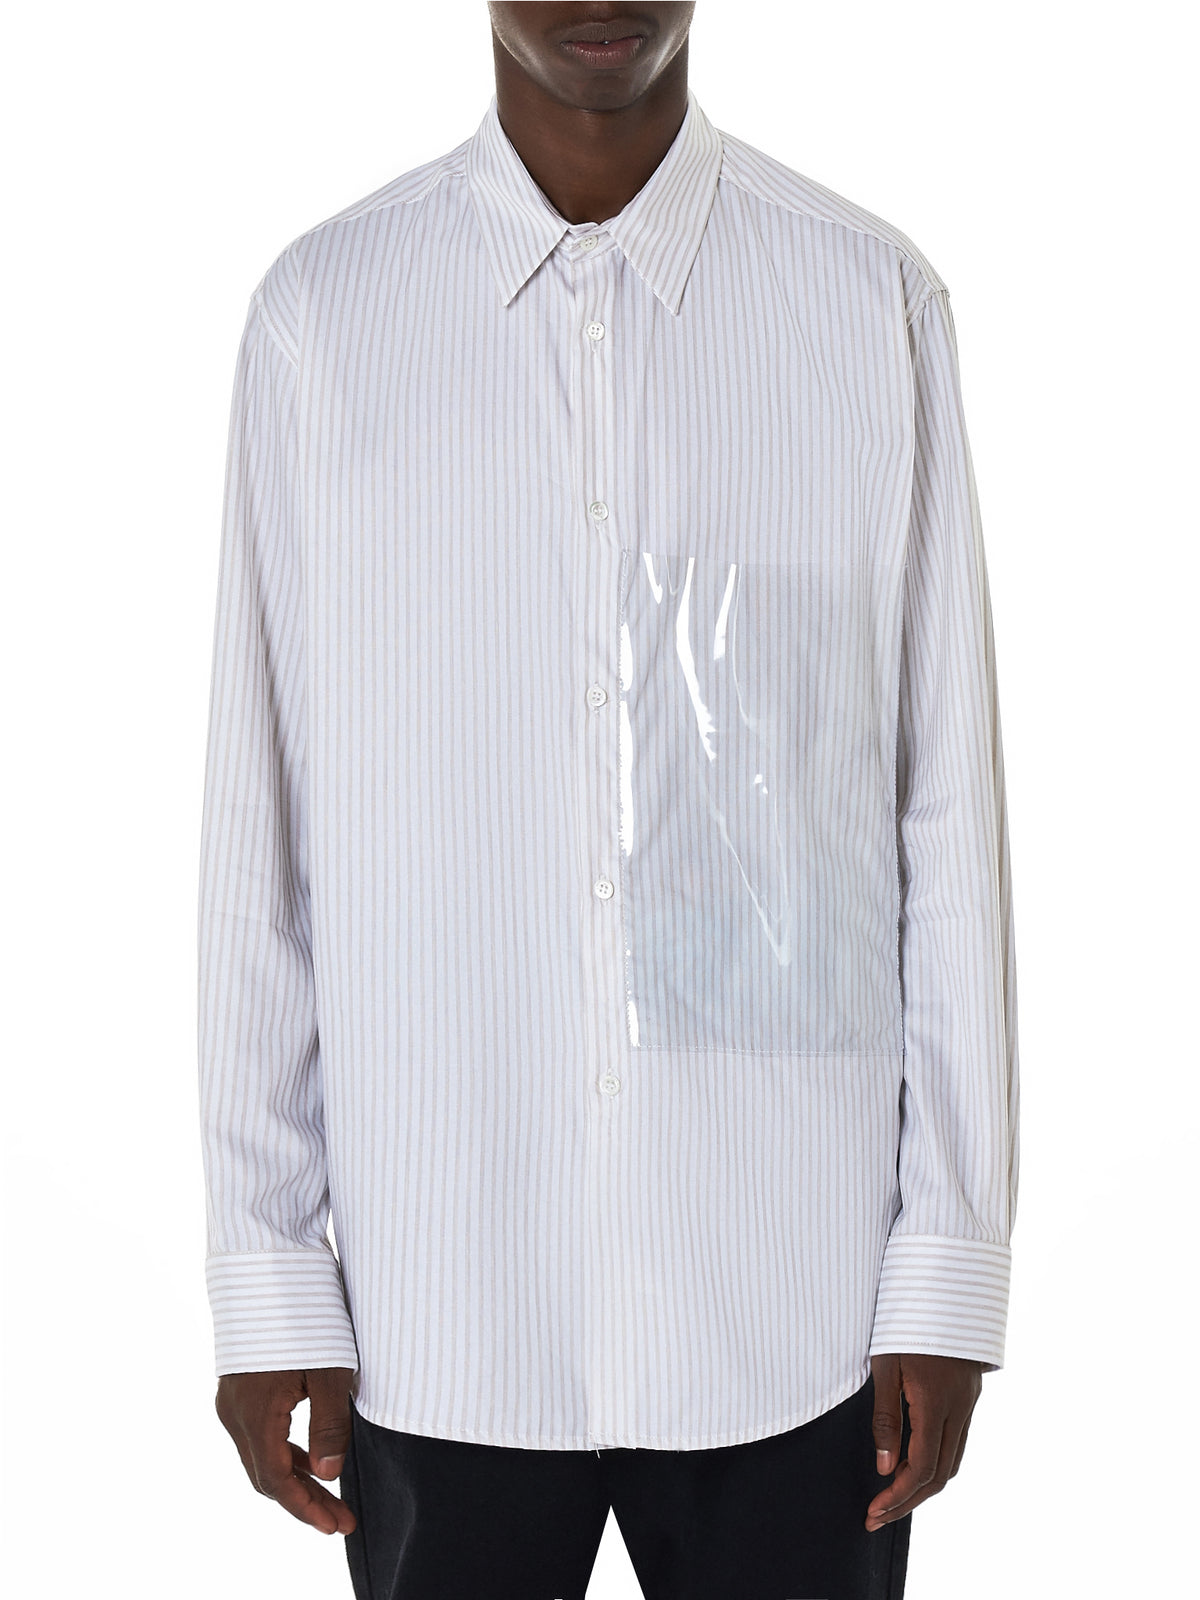 Striped Plastic Pocket Shirt (182-251A-10015-01062)